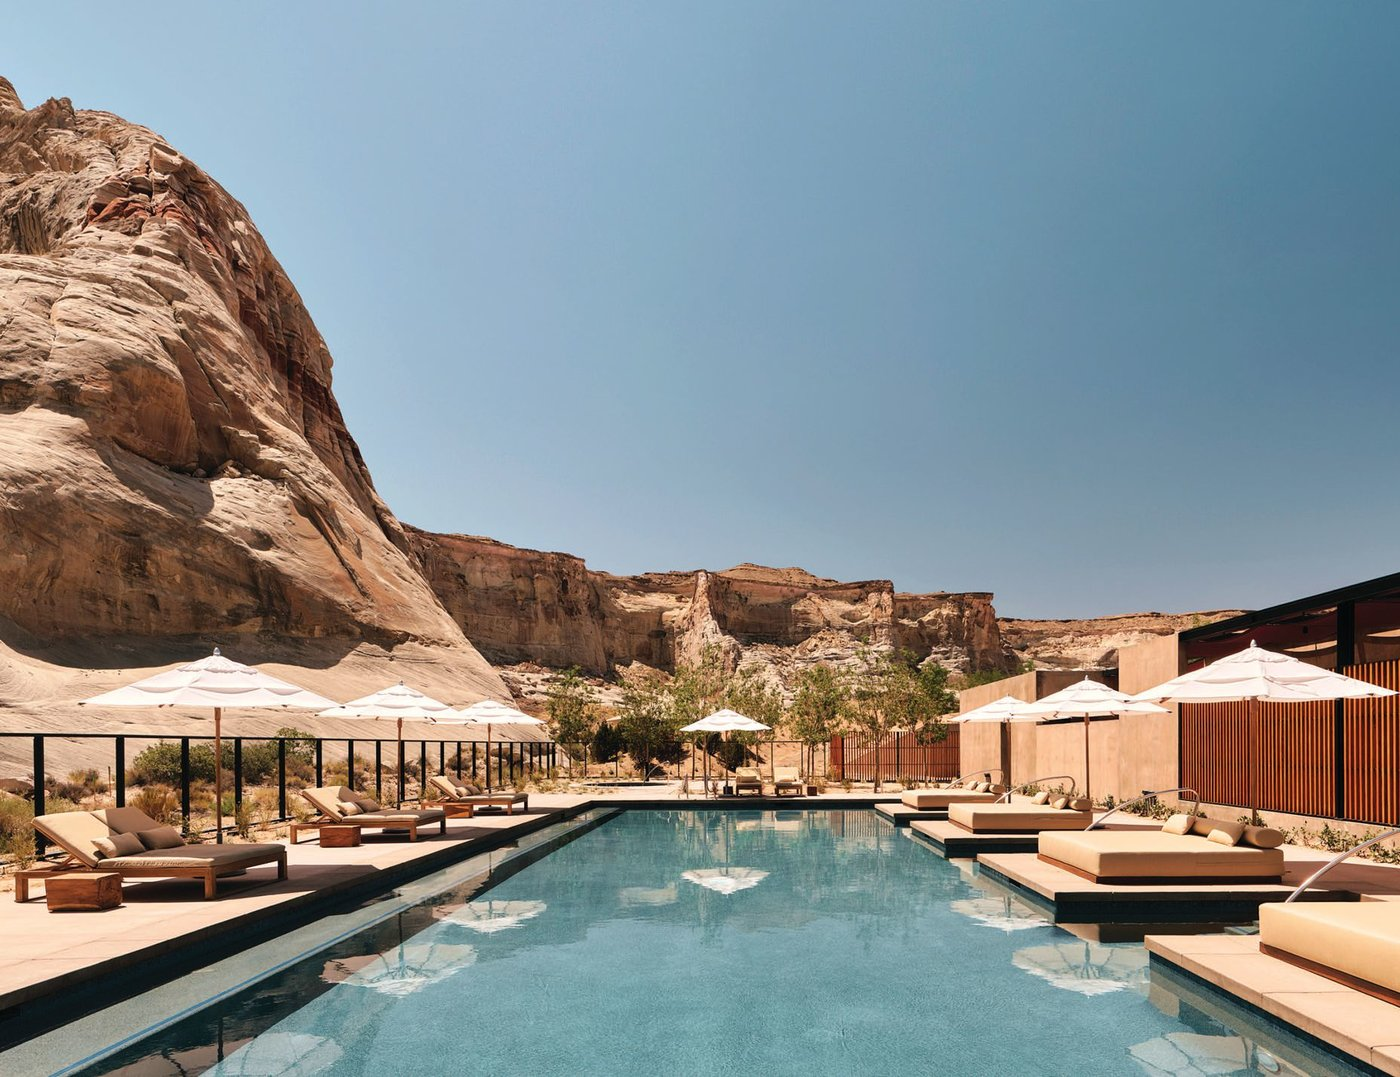 Camp Sarika's pool and Jacuzzi, tucked among mesas and seamlessly connected to the surrounding desert landscape, offer a space for respite. PHOTOS COURTESY OF AMAN